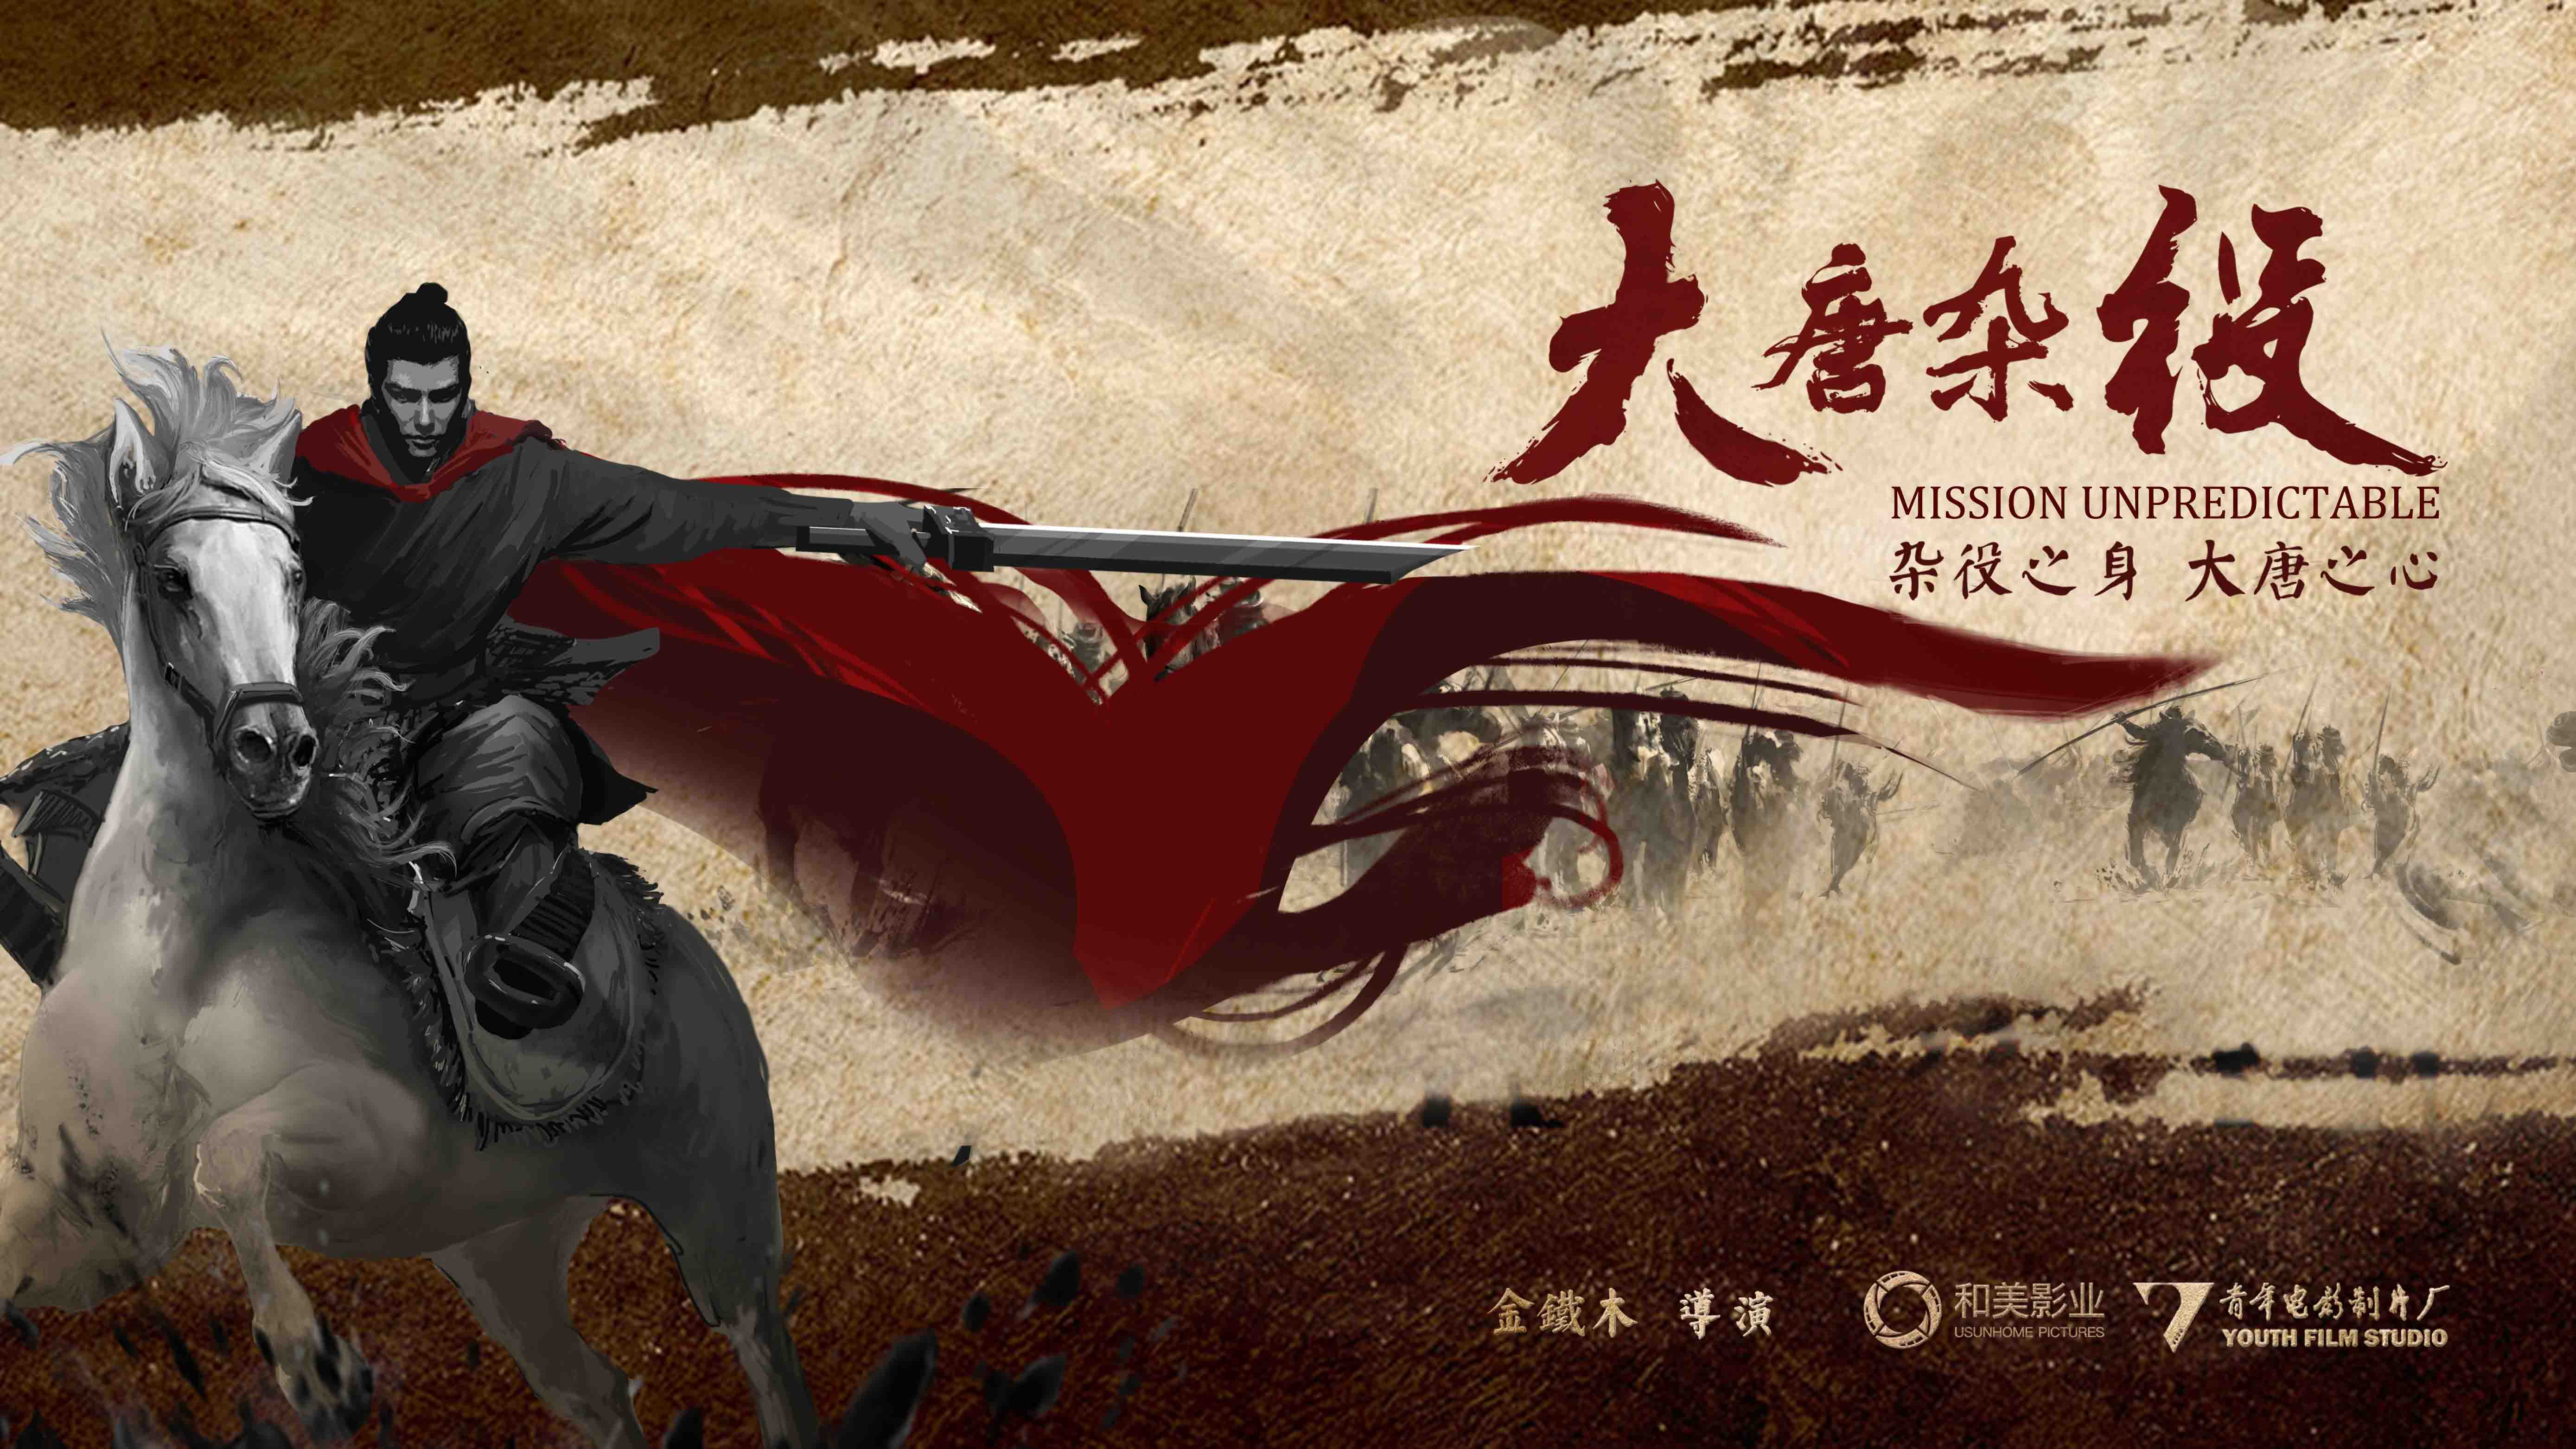 Legendary Princess Wencheng comes to big screen